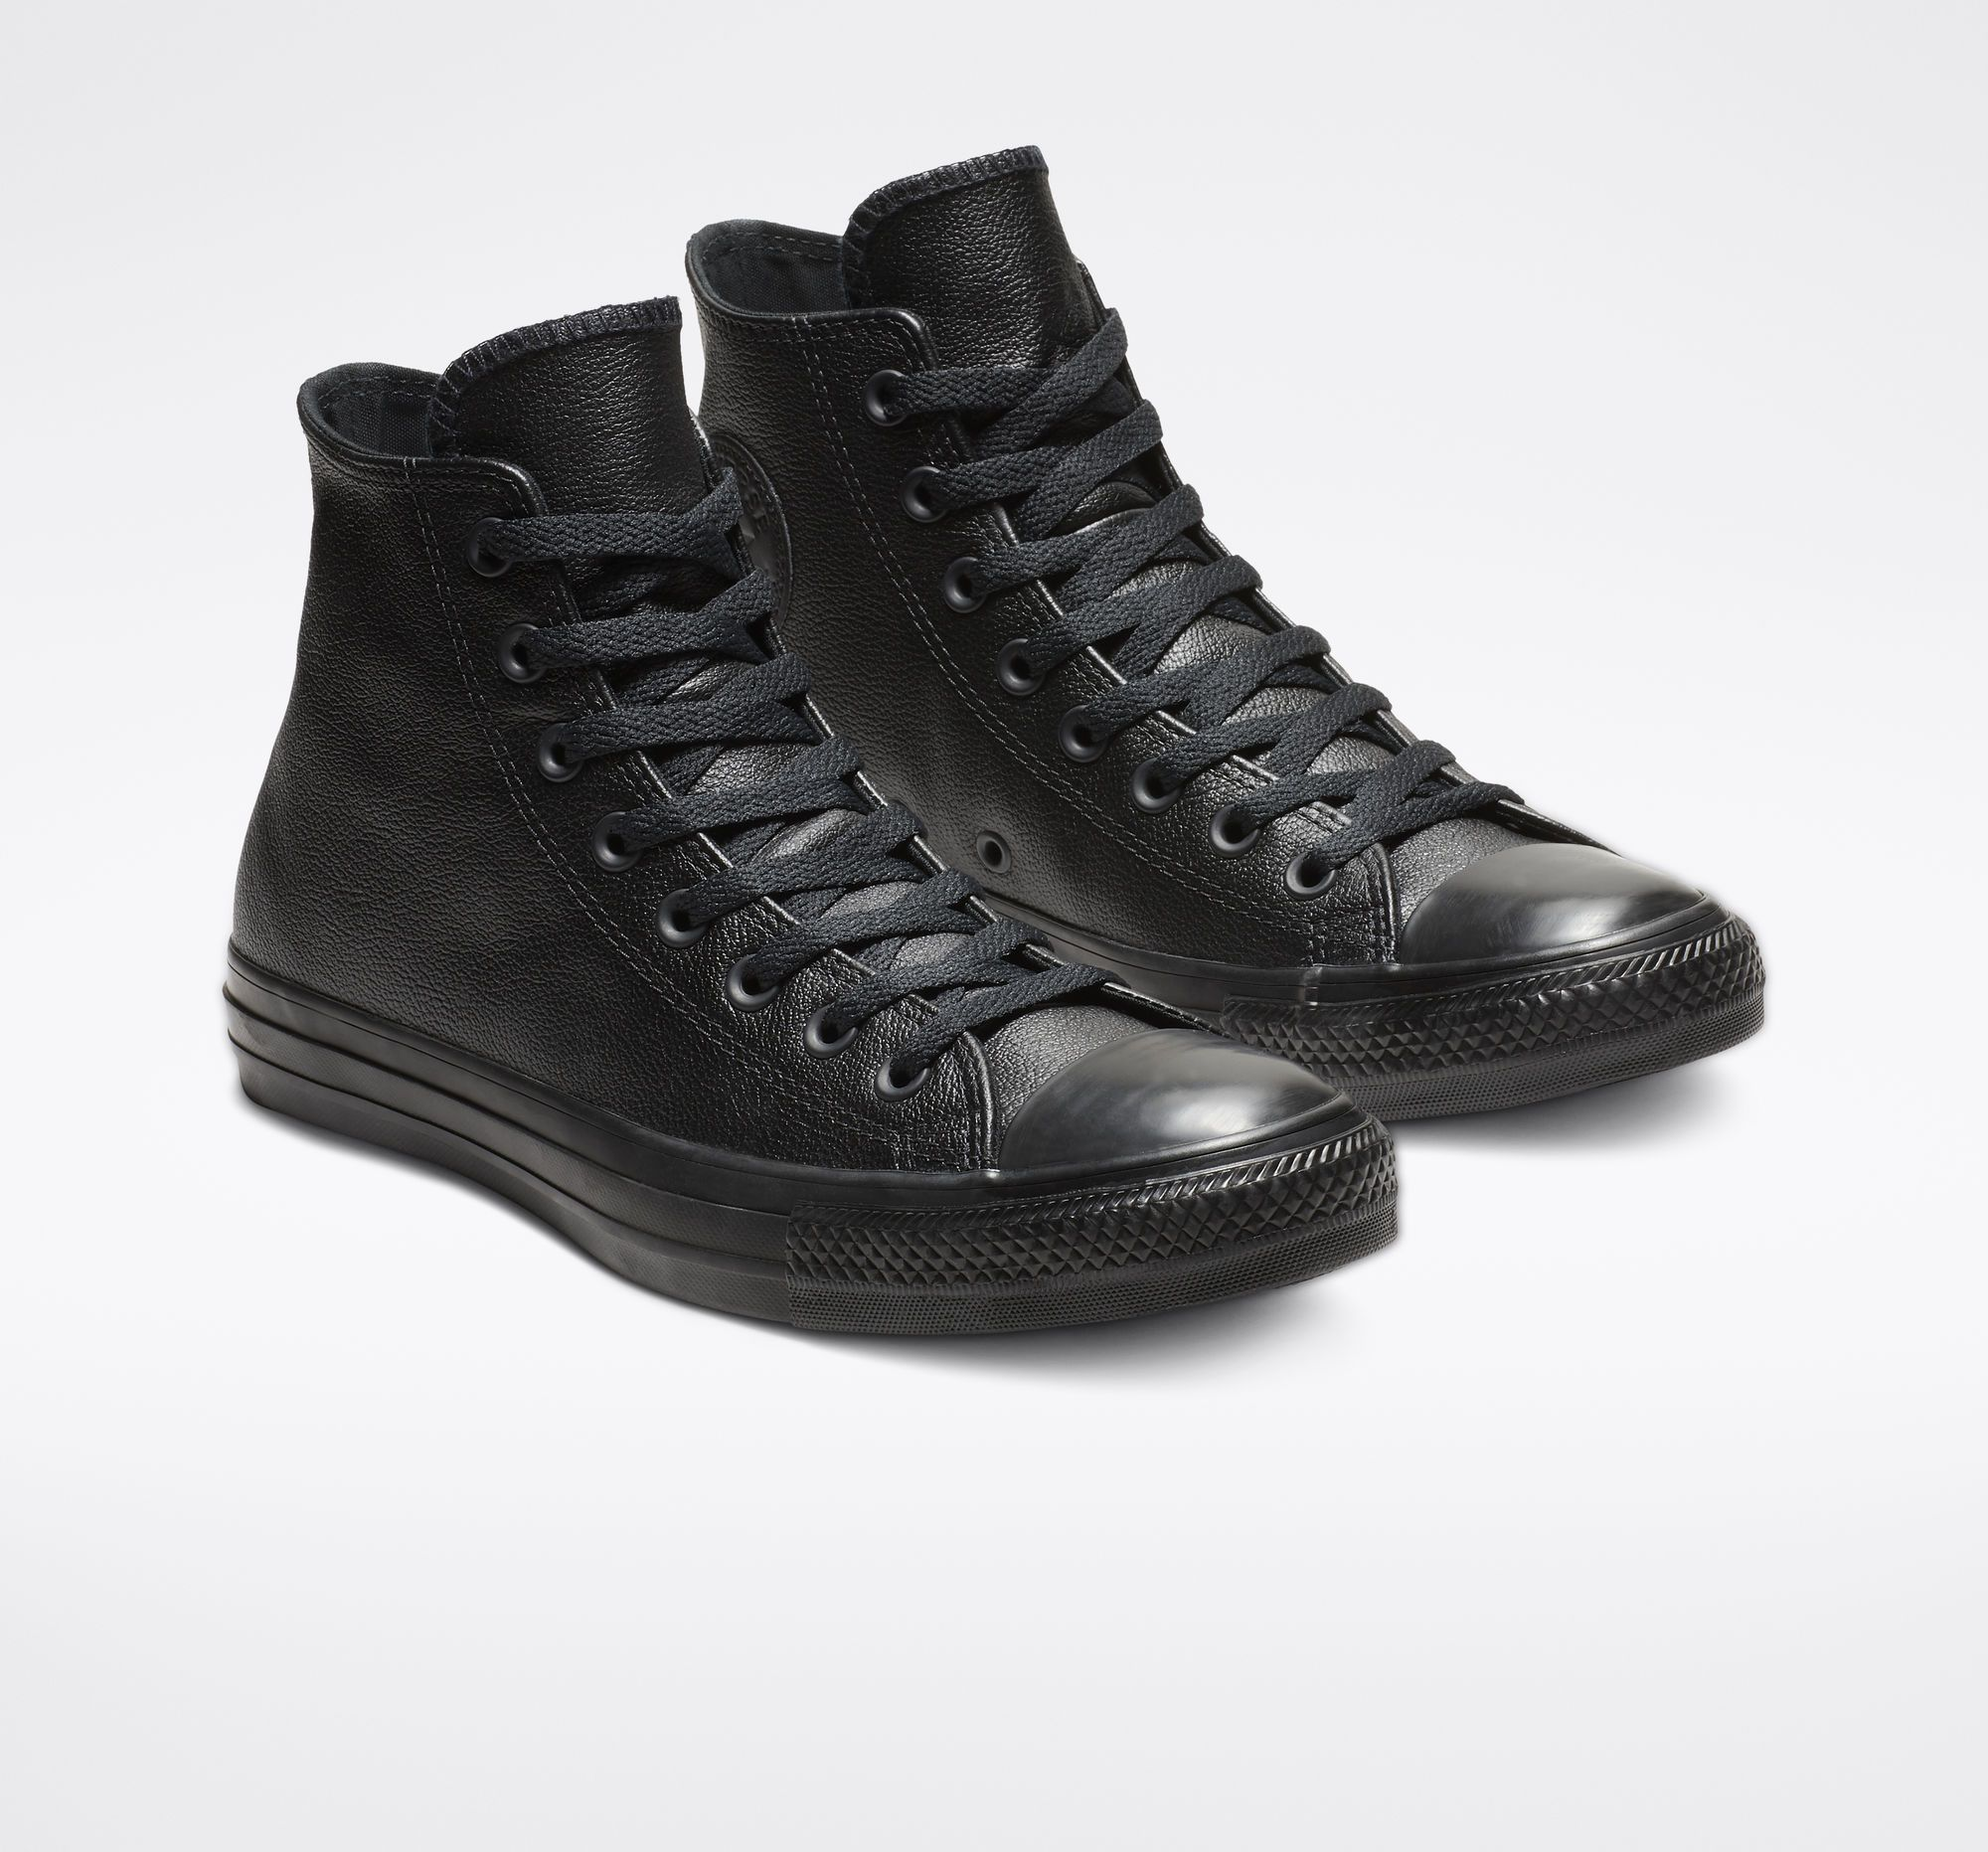 chuck taylor all star mono leather high top